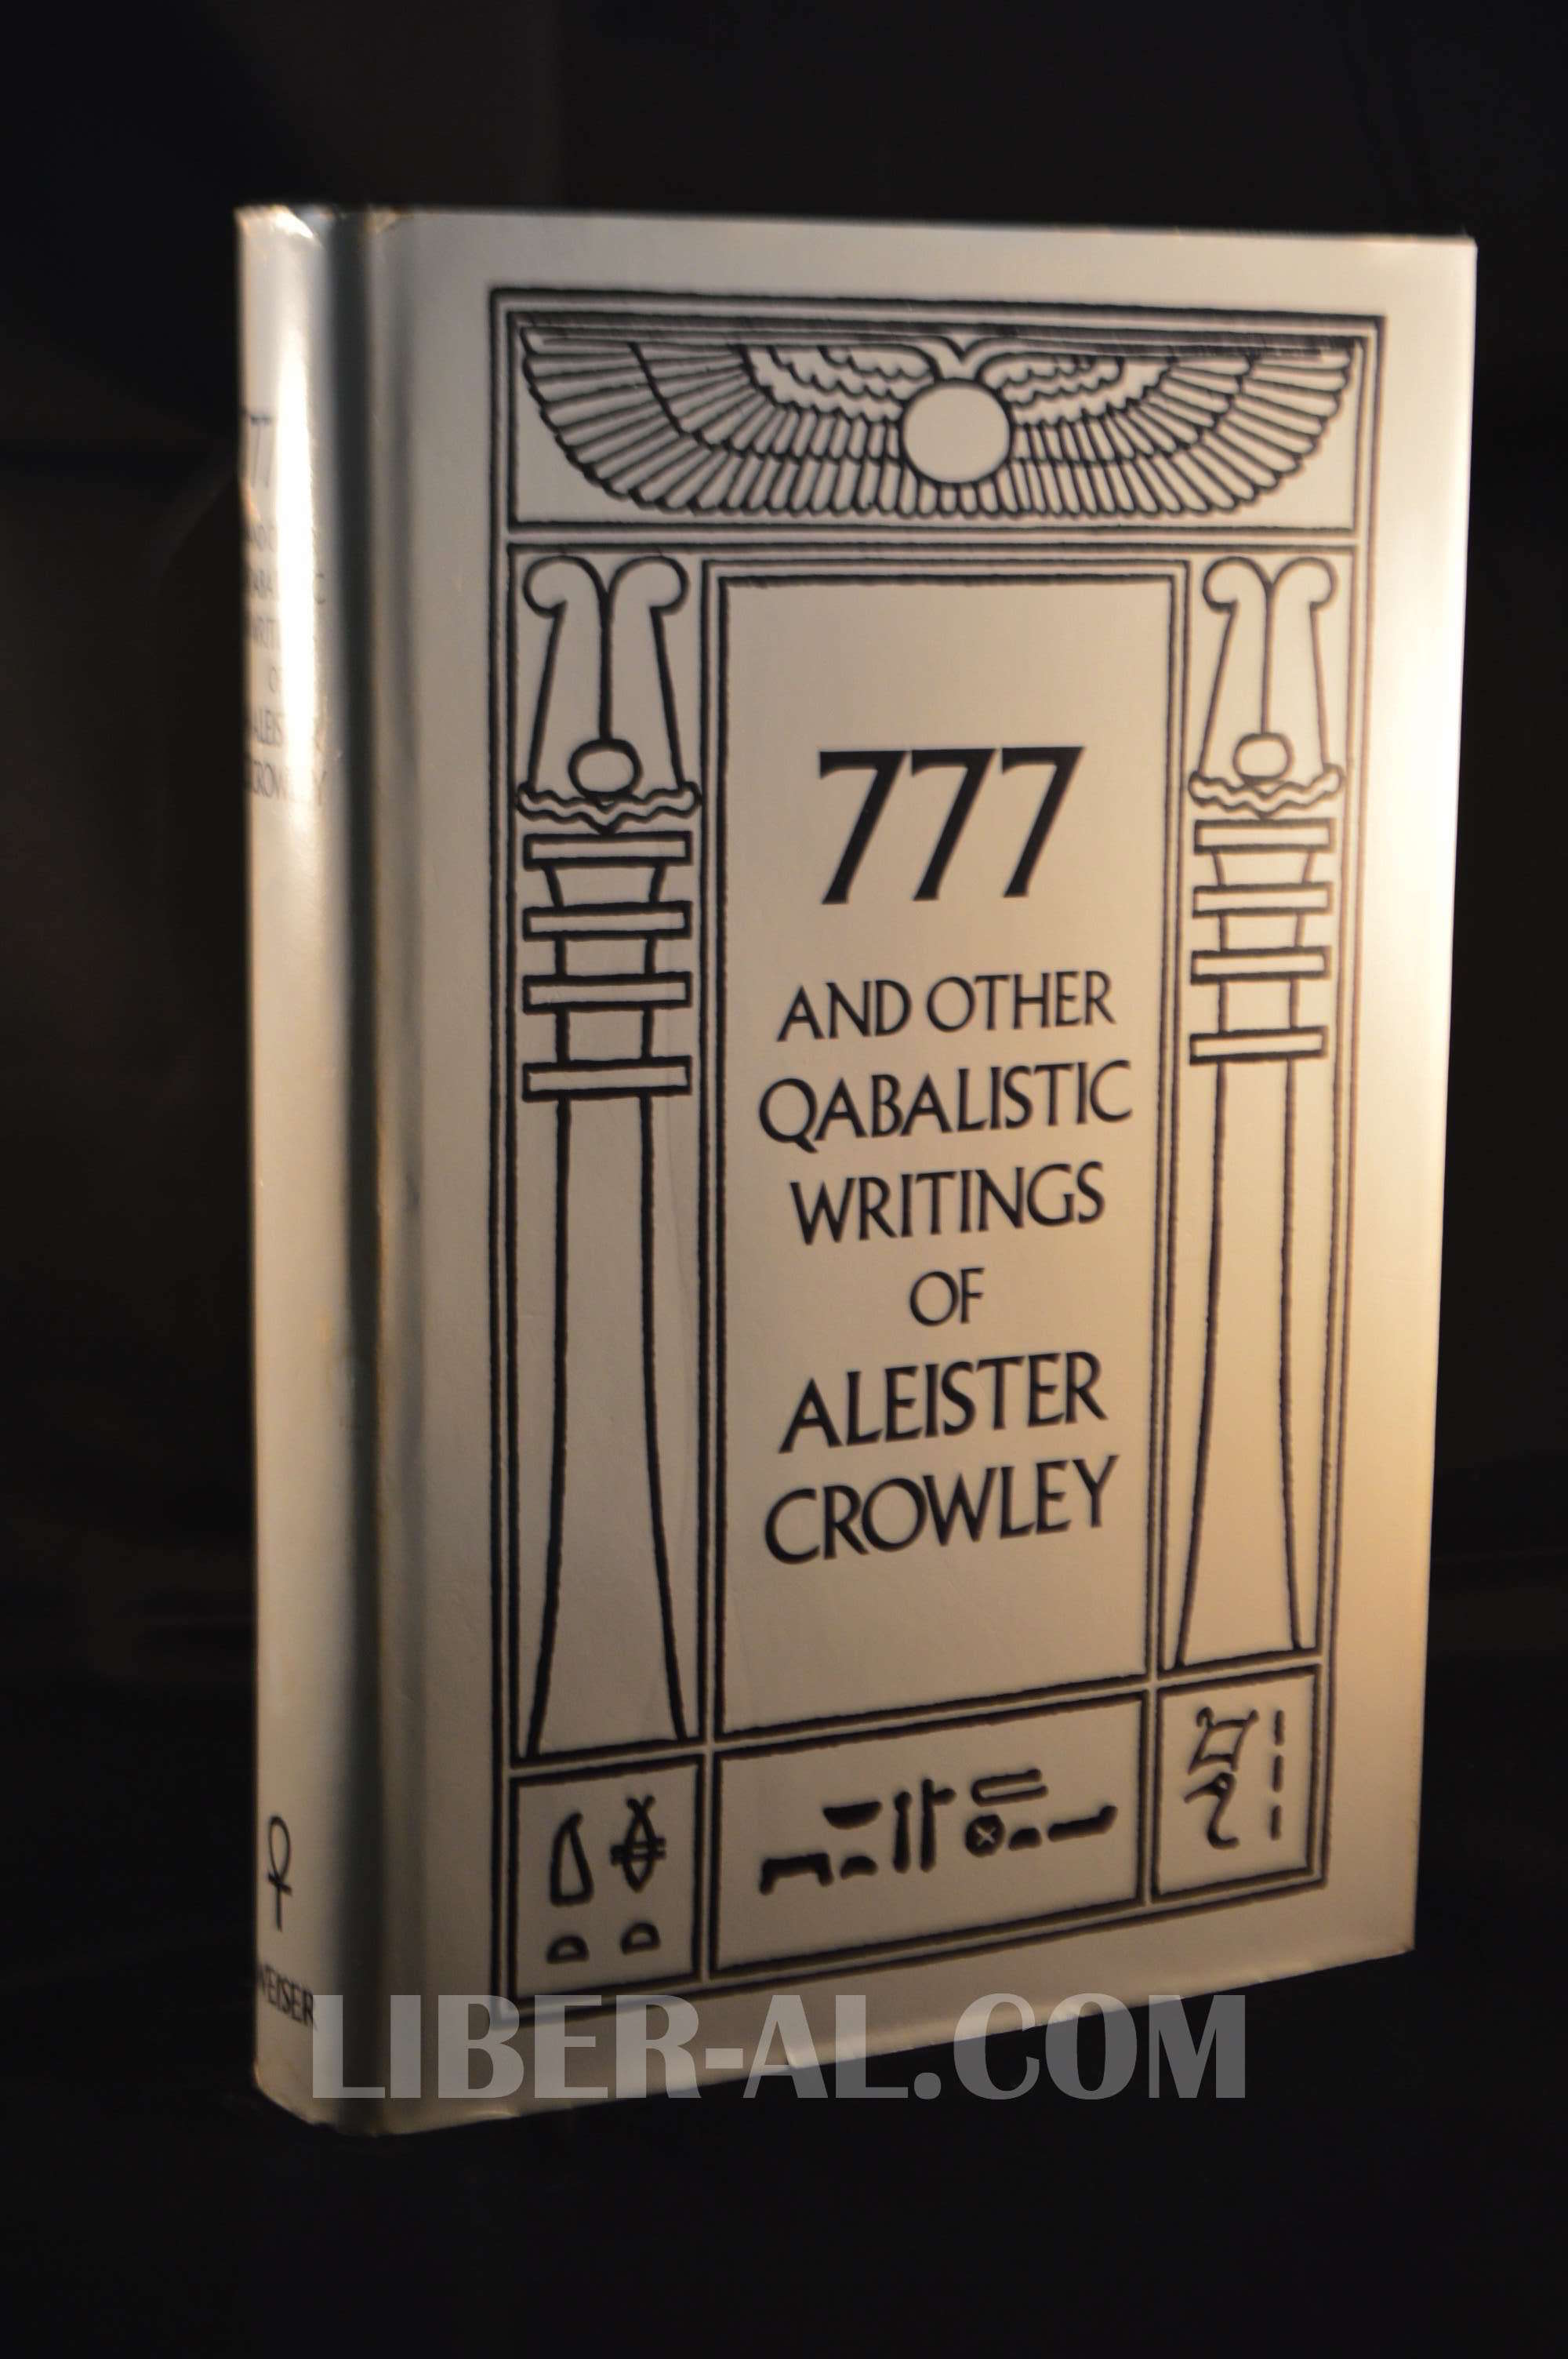 777 AND OTHER QABALISTIC WRITINGS OF ALEISTER CROWLEY INCLUDING GEMATRIA &  SEPHER SEPHIROTH (1973)